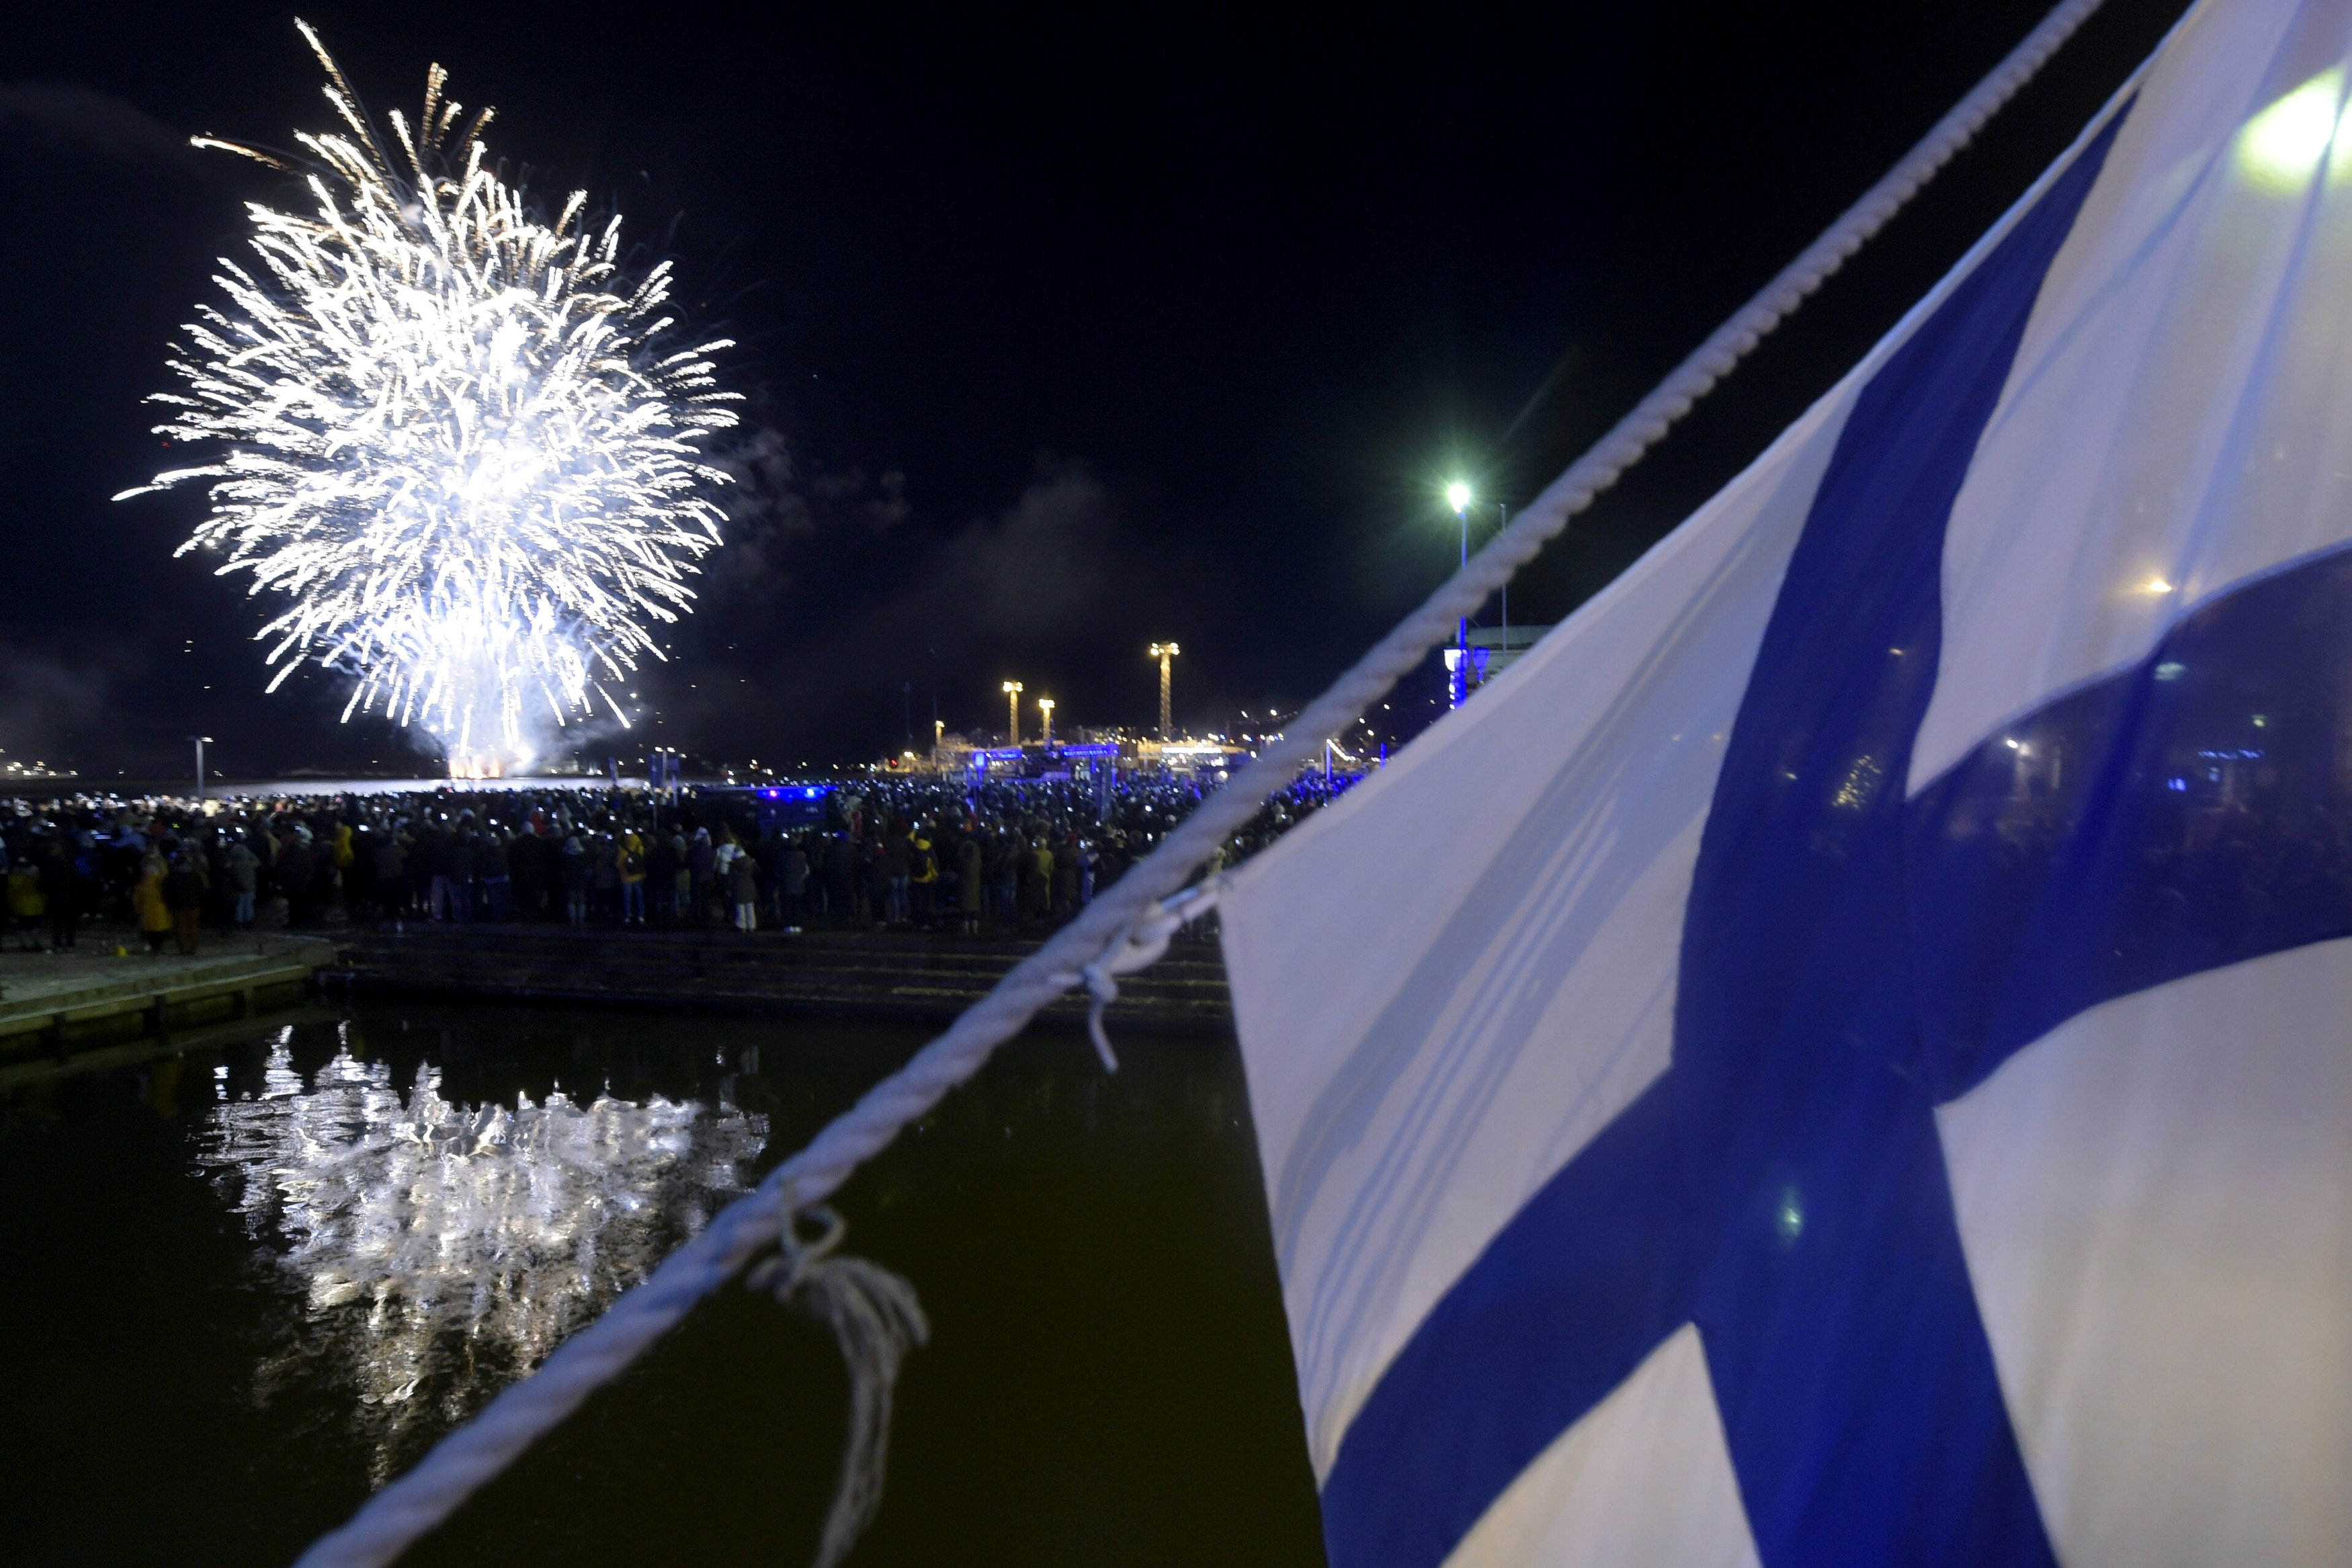 Finland is world's happiest country